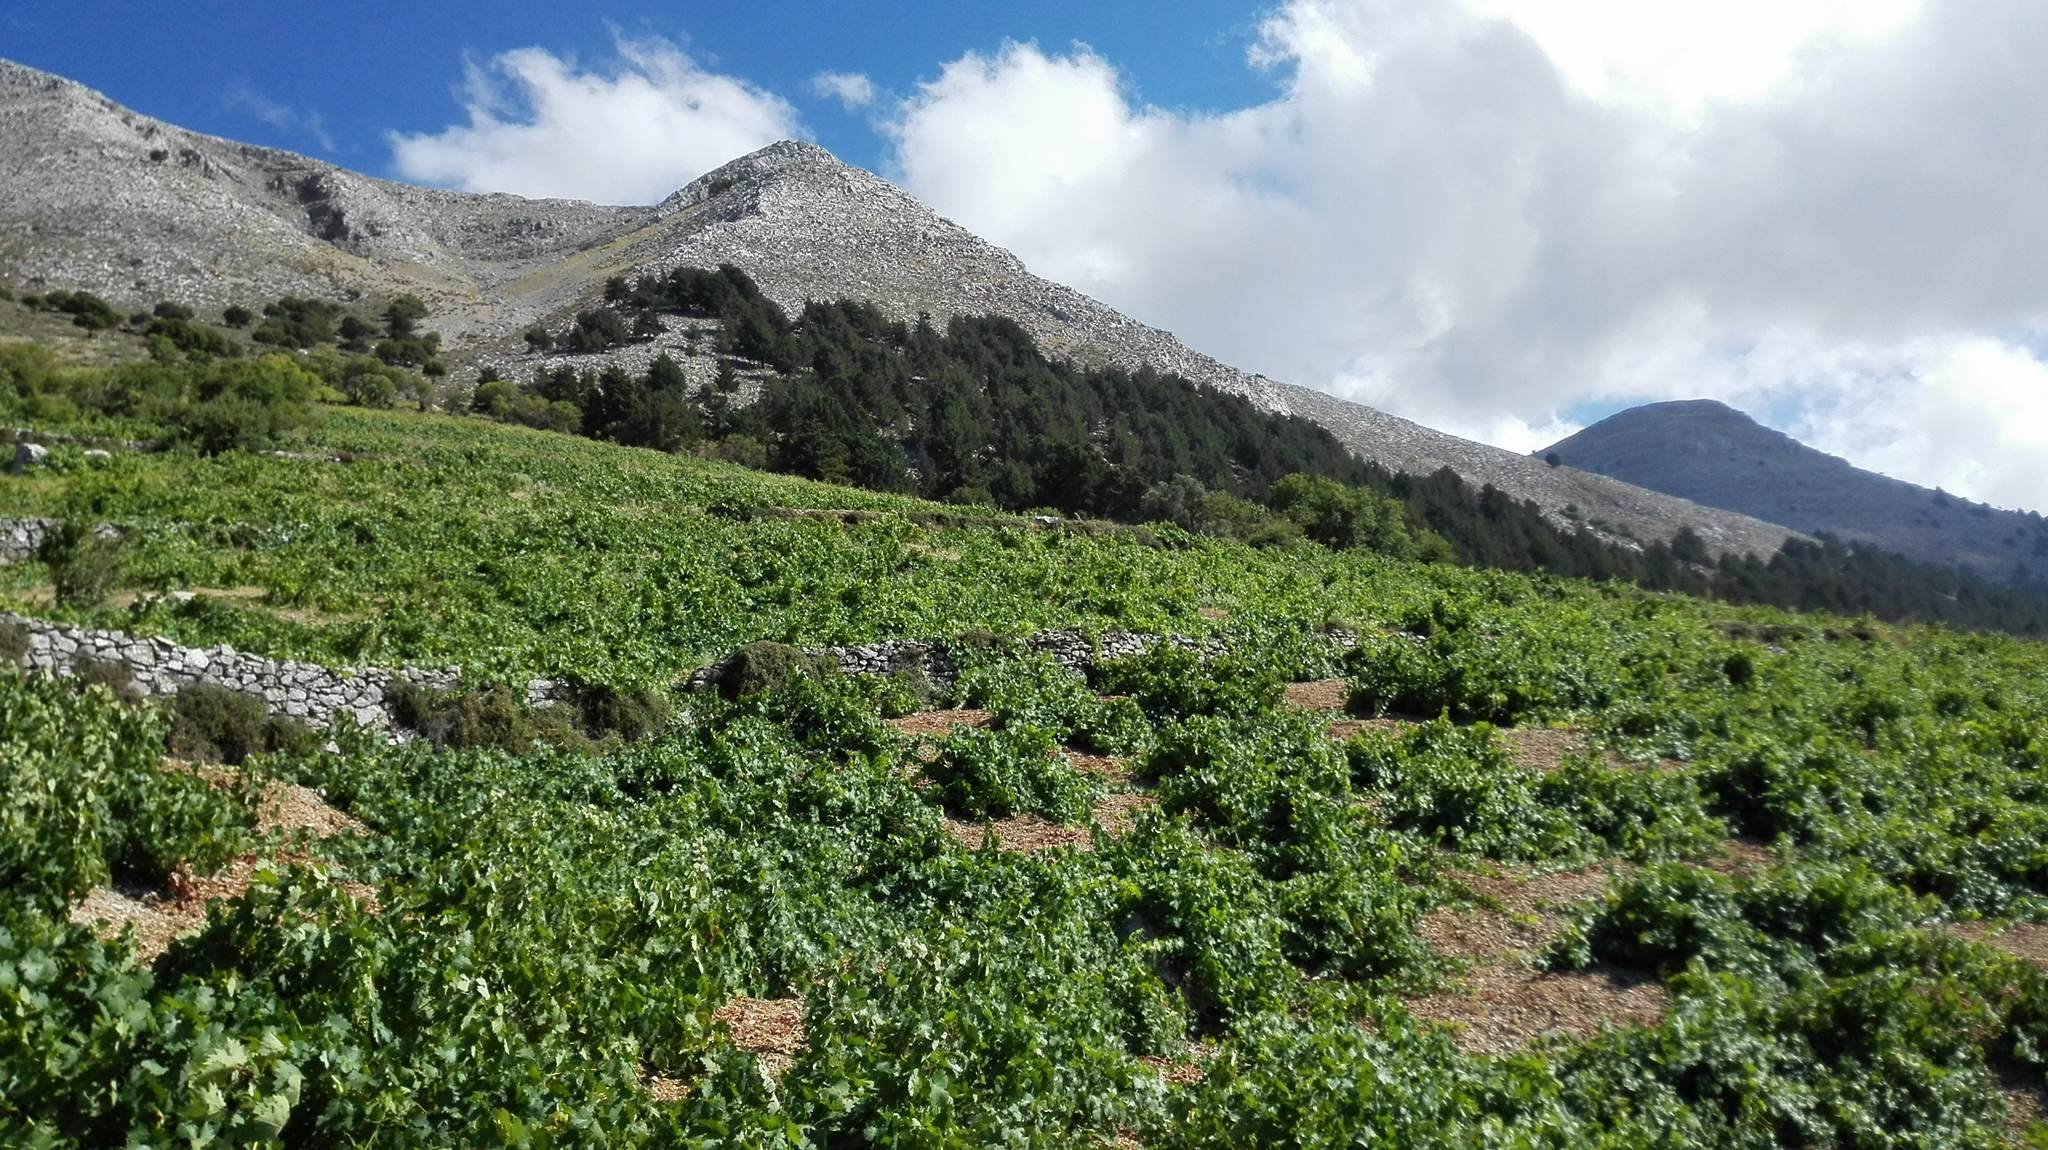 The mountainous vineyards of inland Rhodes. Photo cred:  Yiannis Karakasis MW